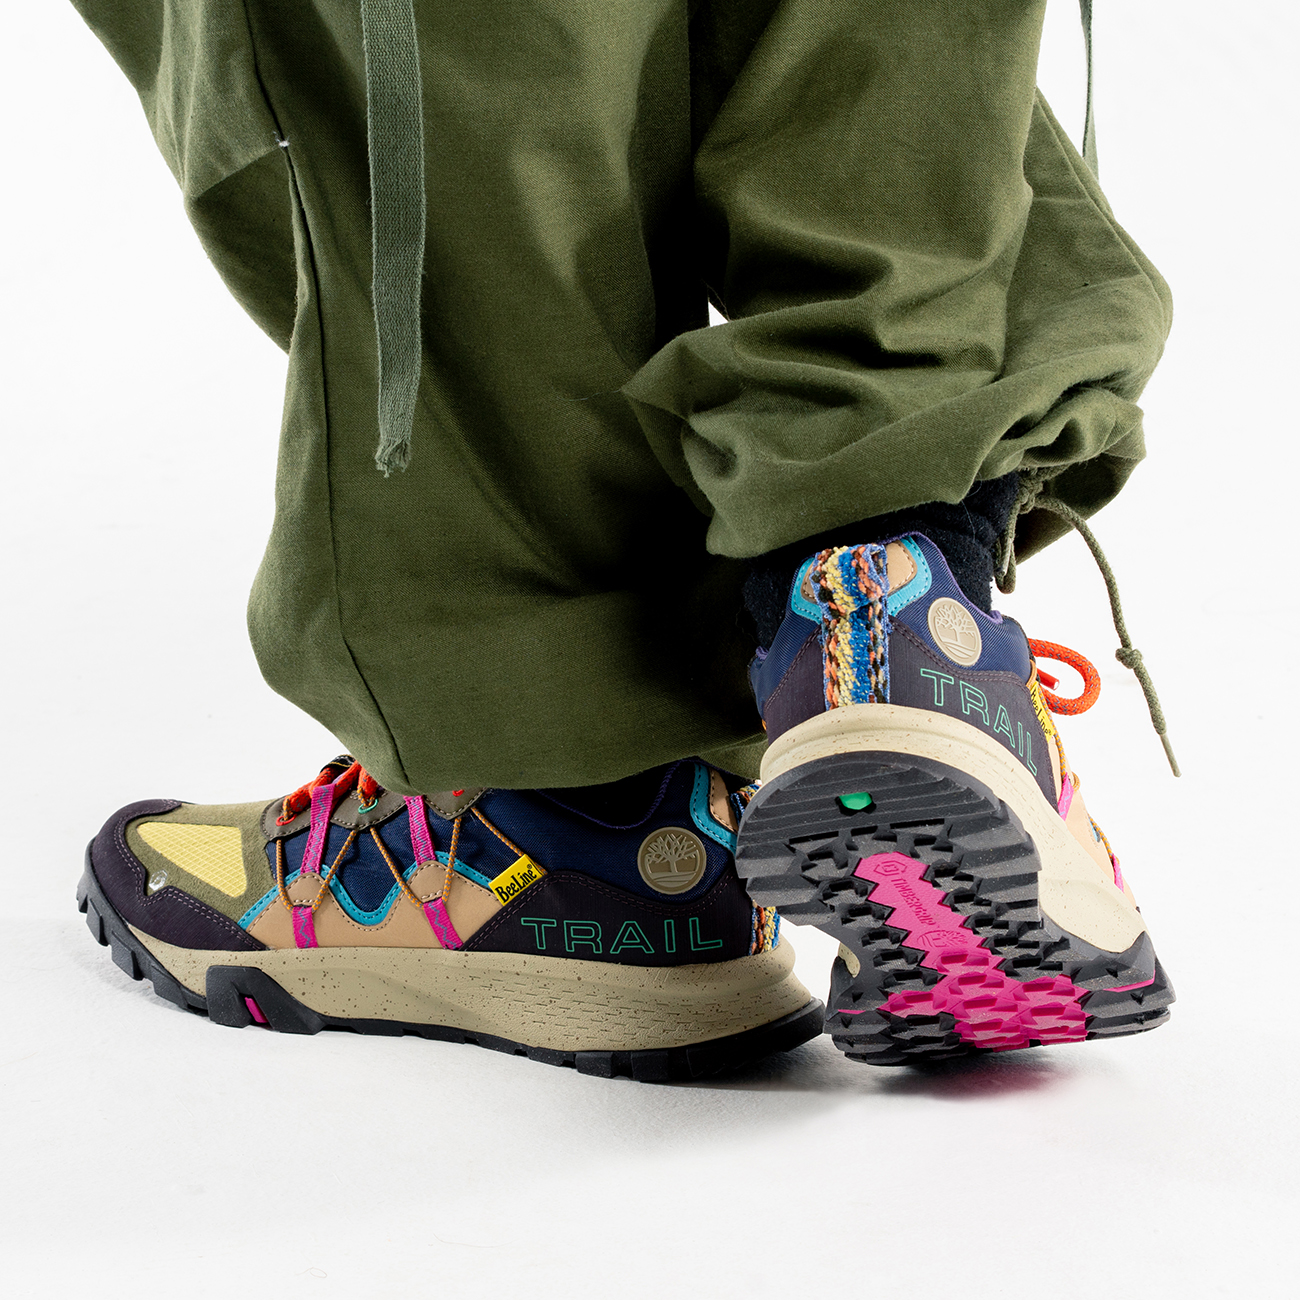 Bee Line By Billionaire Boys Club x Timberland Chaussures 2021